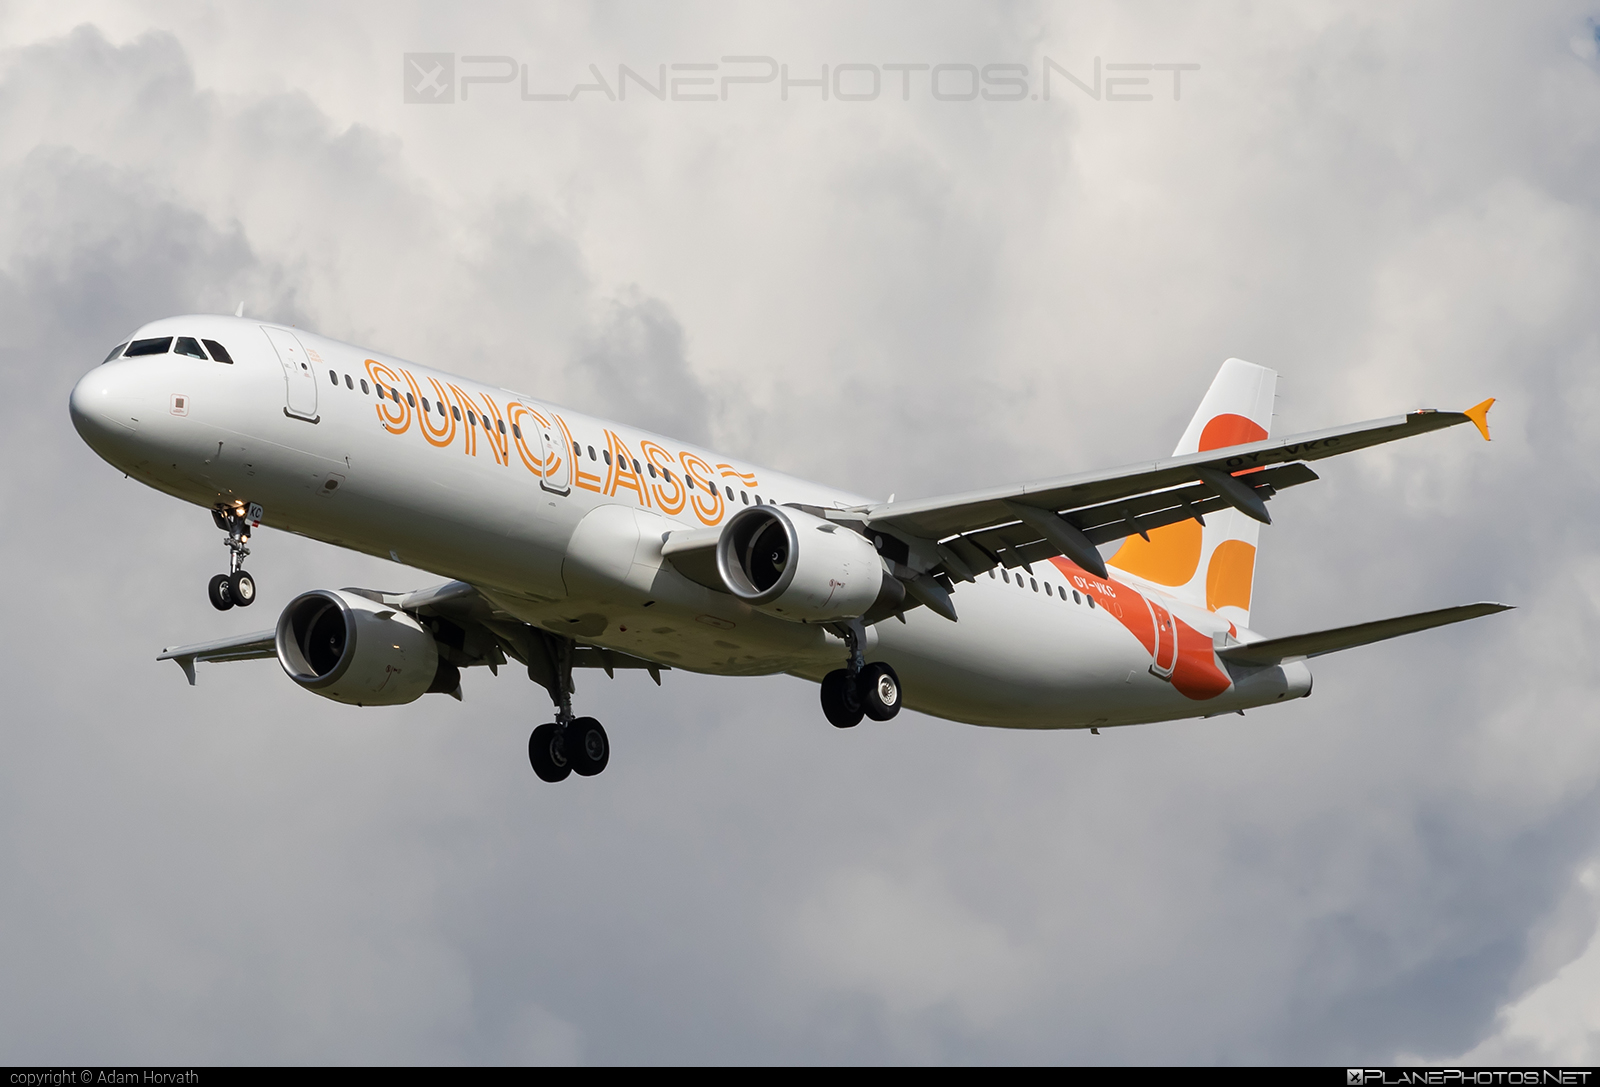 Airbus A321-211 - OY-VKC operated by Sunclass Airlines #SunclassAirlines #a320family #a321 #airbus #airbus321